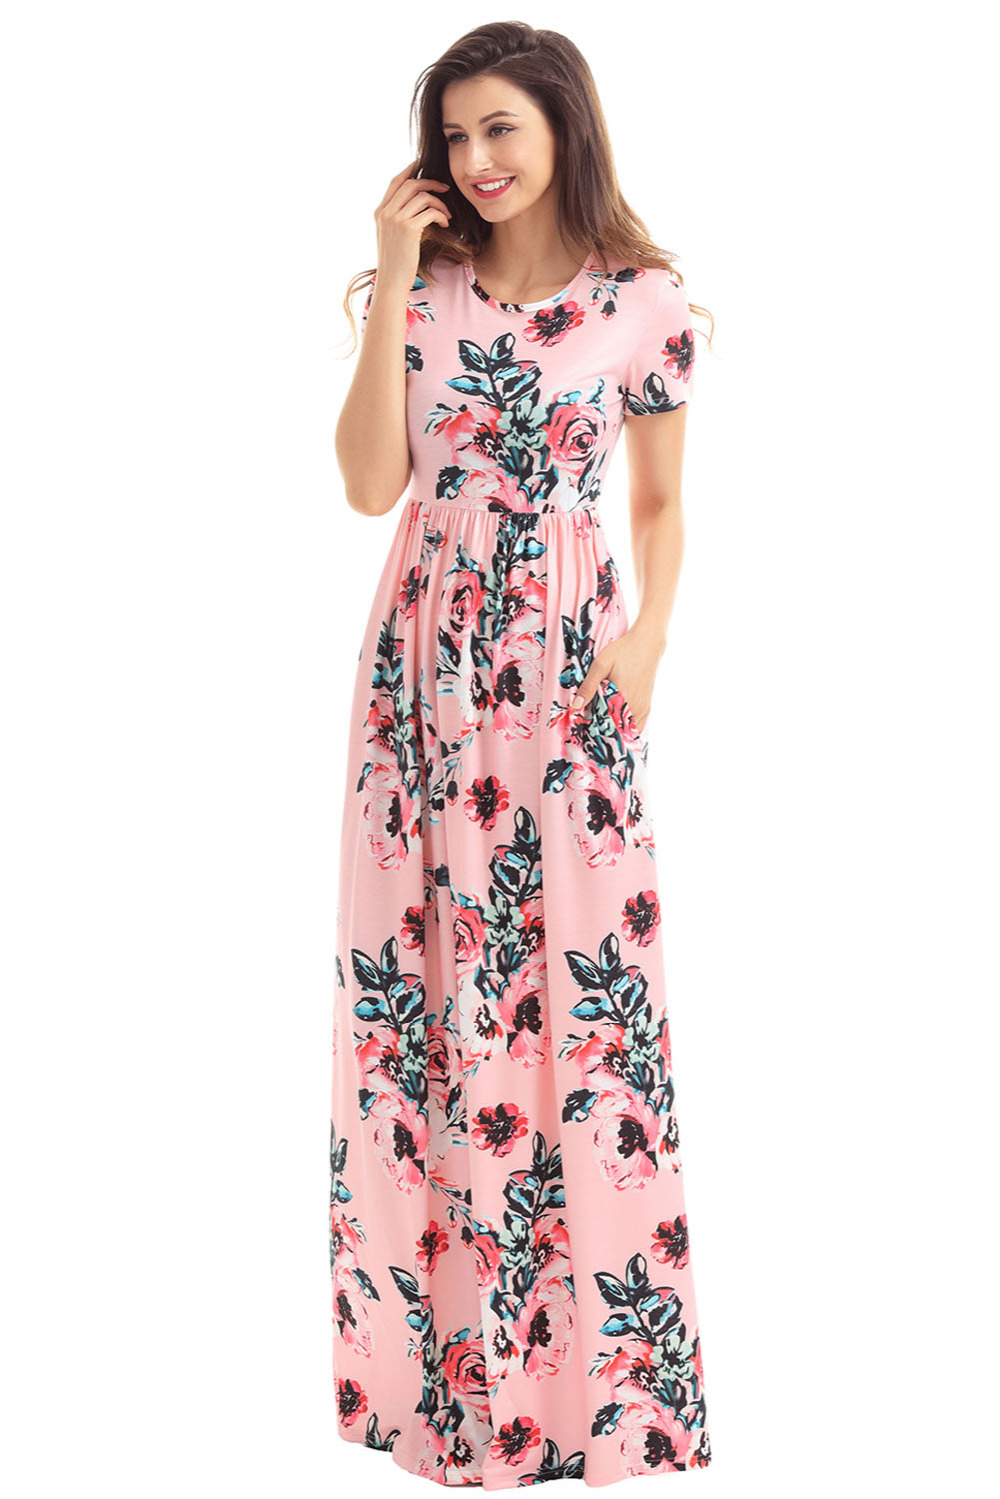 8ac106b638b Pocket Design Short Sleeve Blush Floral Maxi Dress 2017 Elegant Summer  Holiday Beach Party Bohemian Occasion Dresses-in Dresses from Women s  Clothing ...